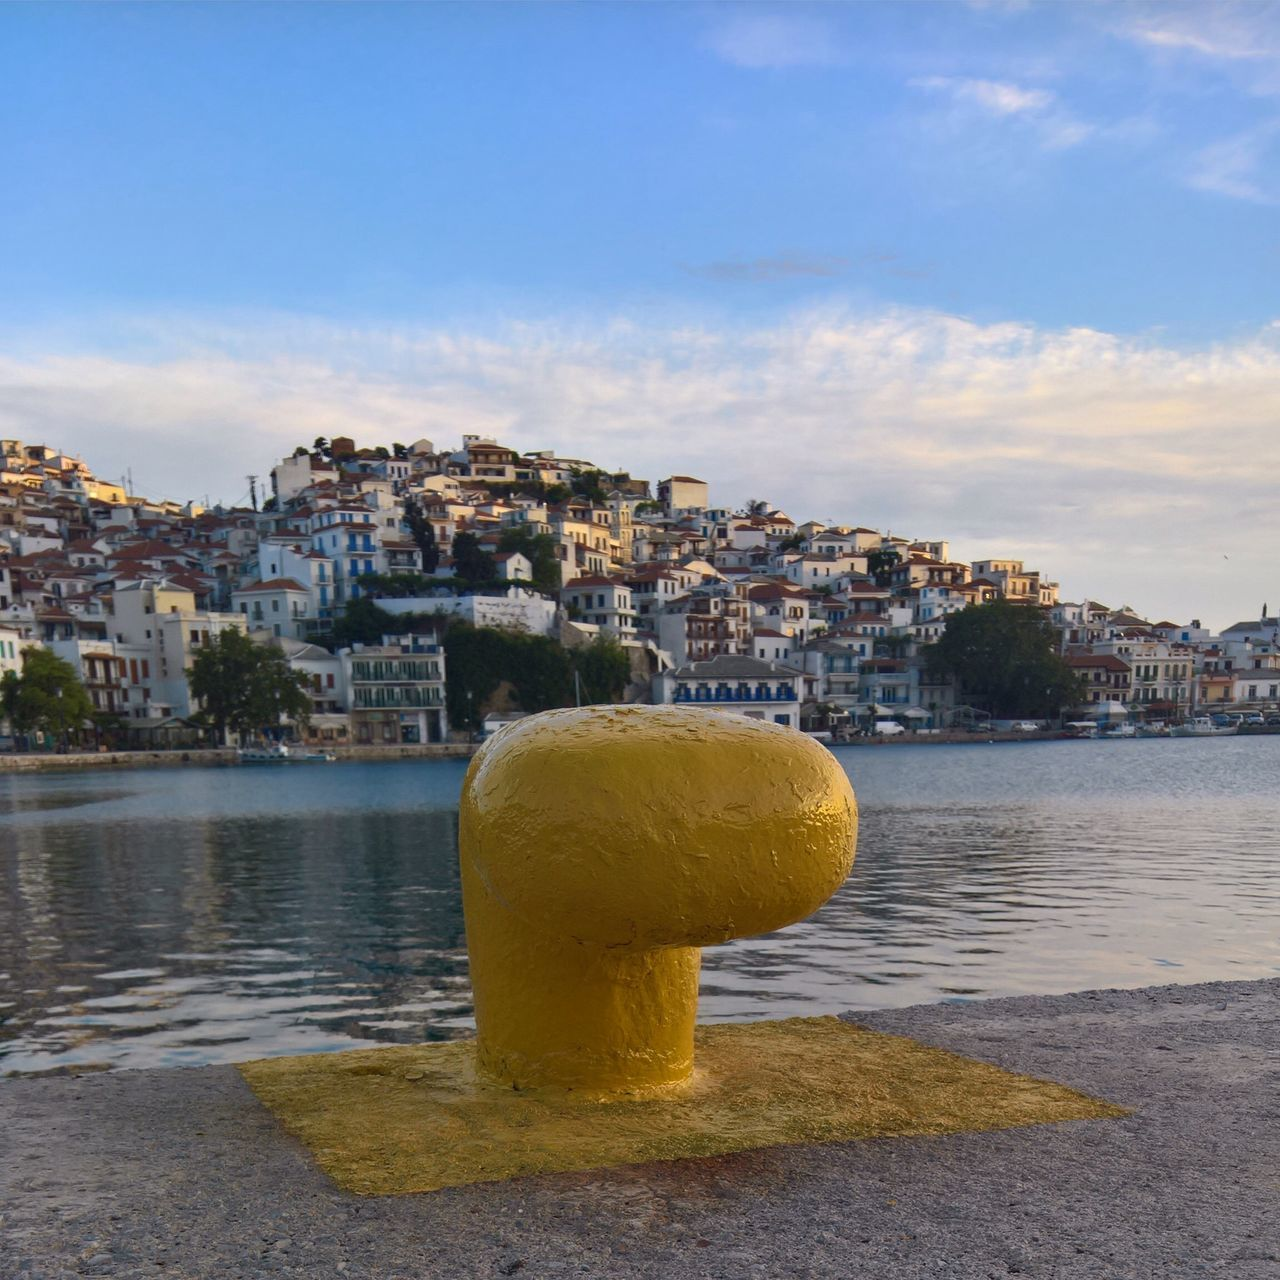 Skopelos Architecture Greece Cityscape Outdoors No People Check This Out Eye4photography  Cityscape Skópelos GREECE ♥♥ Enjoying The View Traveling View Architecture Sea City Cityscapes Enjoying Life